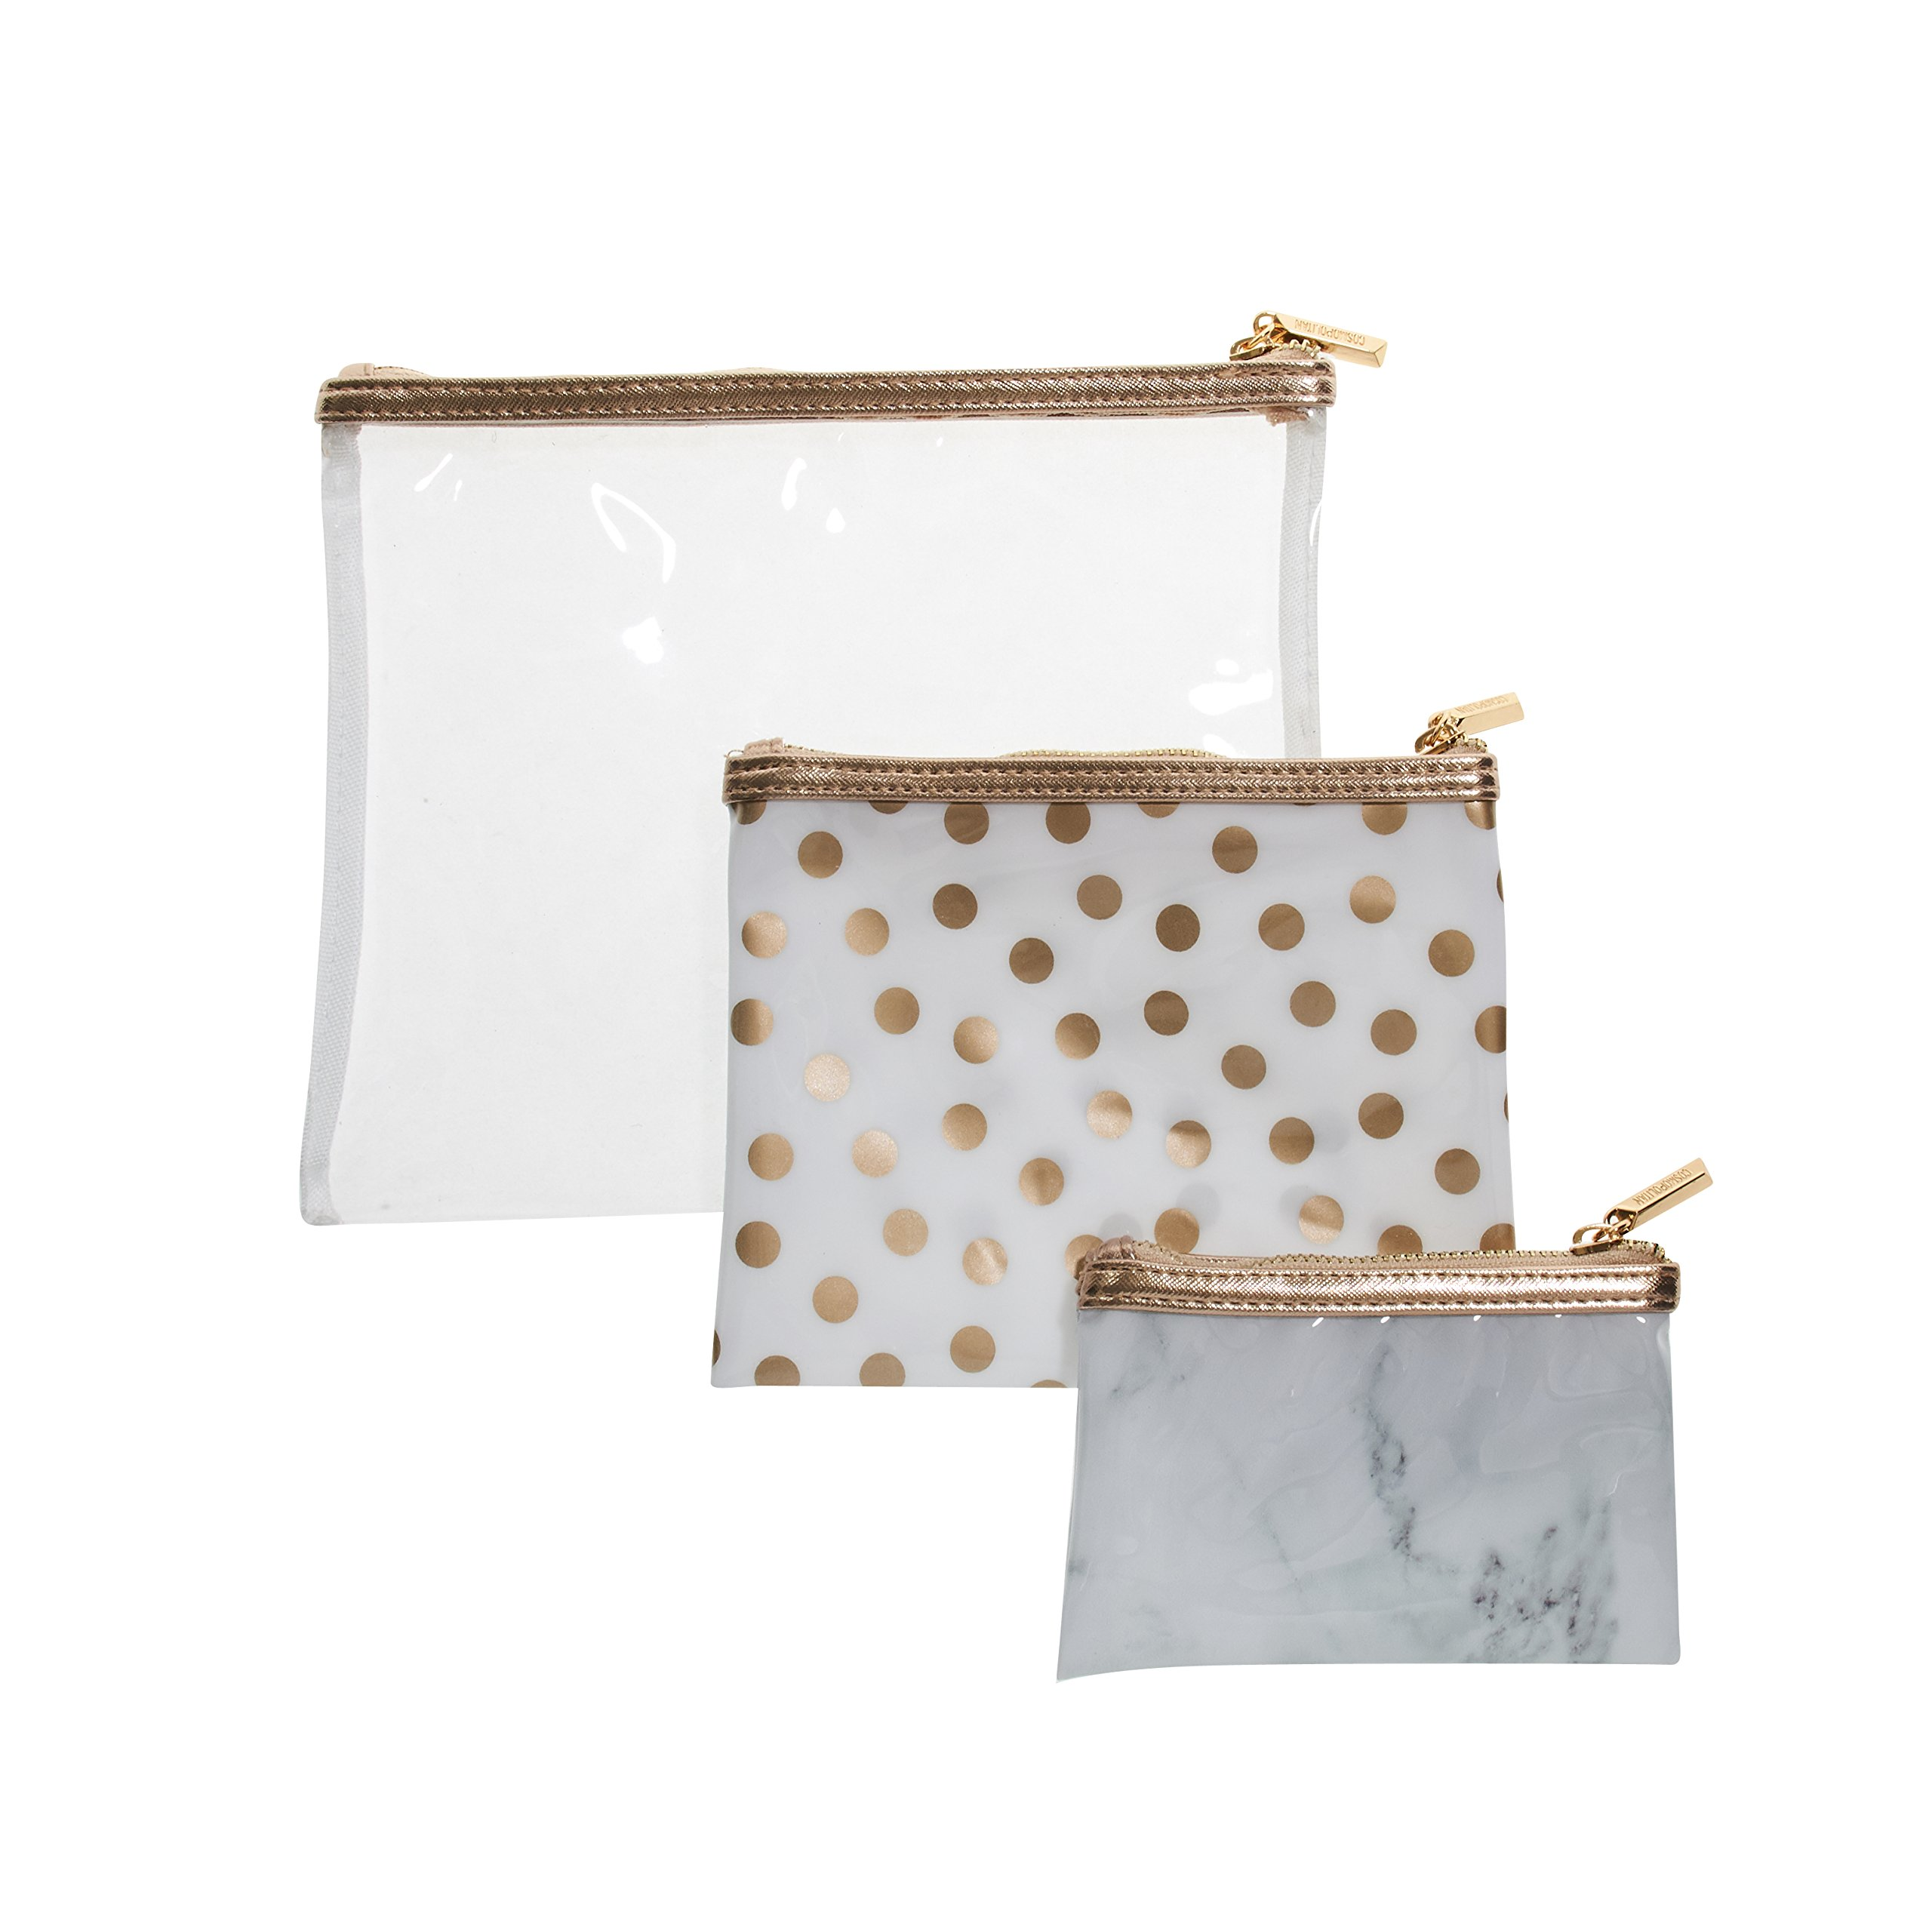 Cosmopolitan 3 Piece Cosmetic Bag Set, Portable Travel Toiletry Pouch Makeup Clutch Bag for Women (Clear Gold)